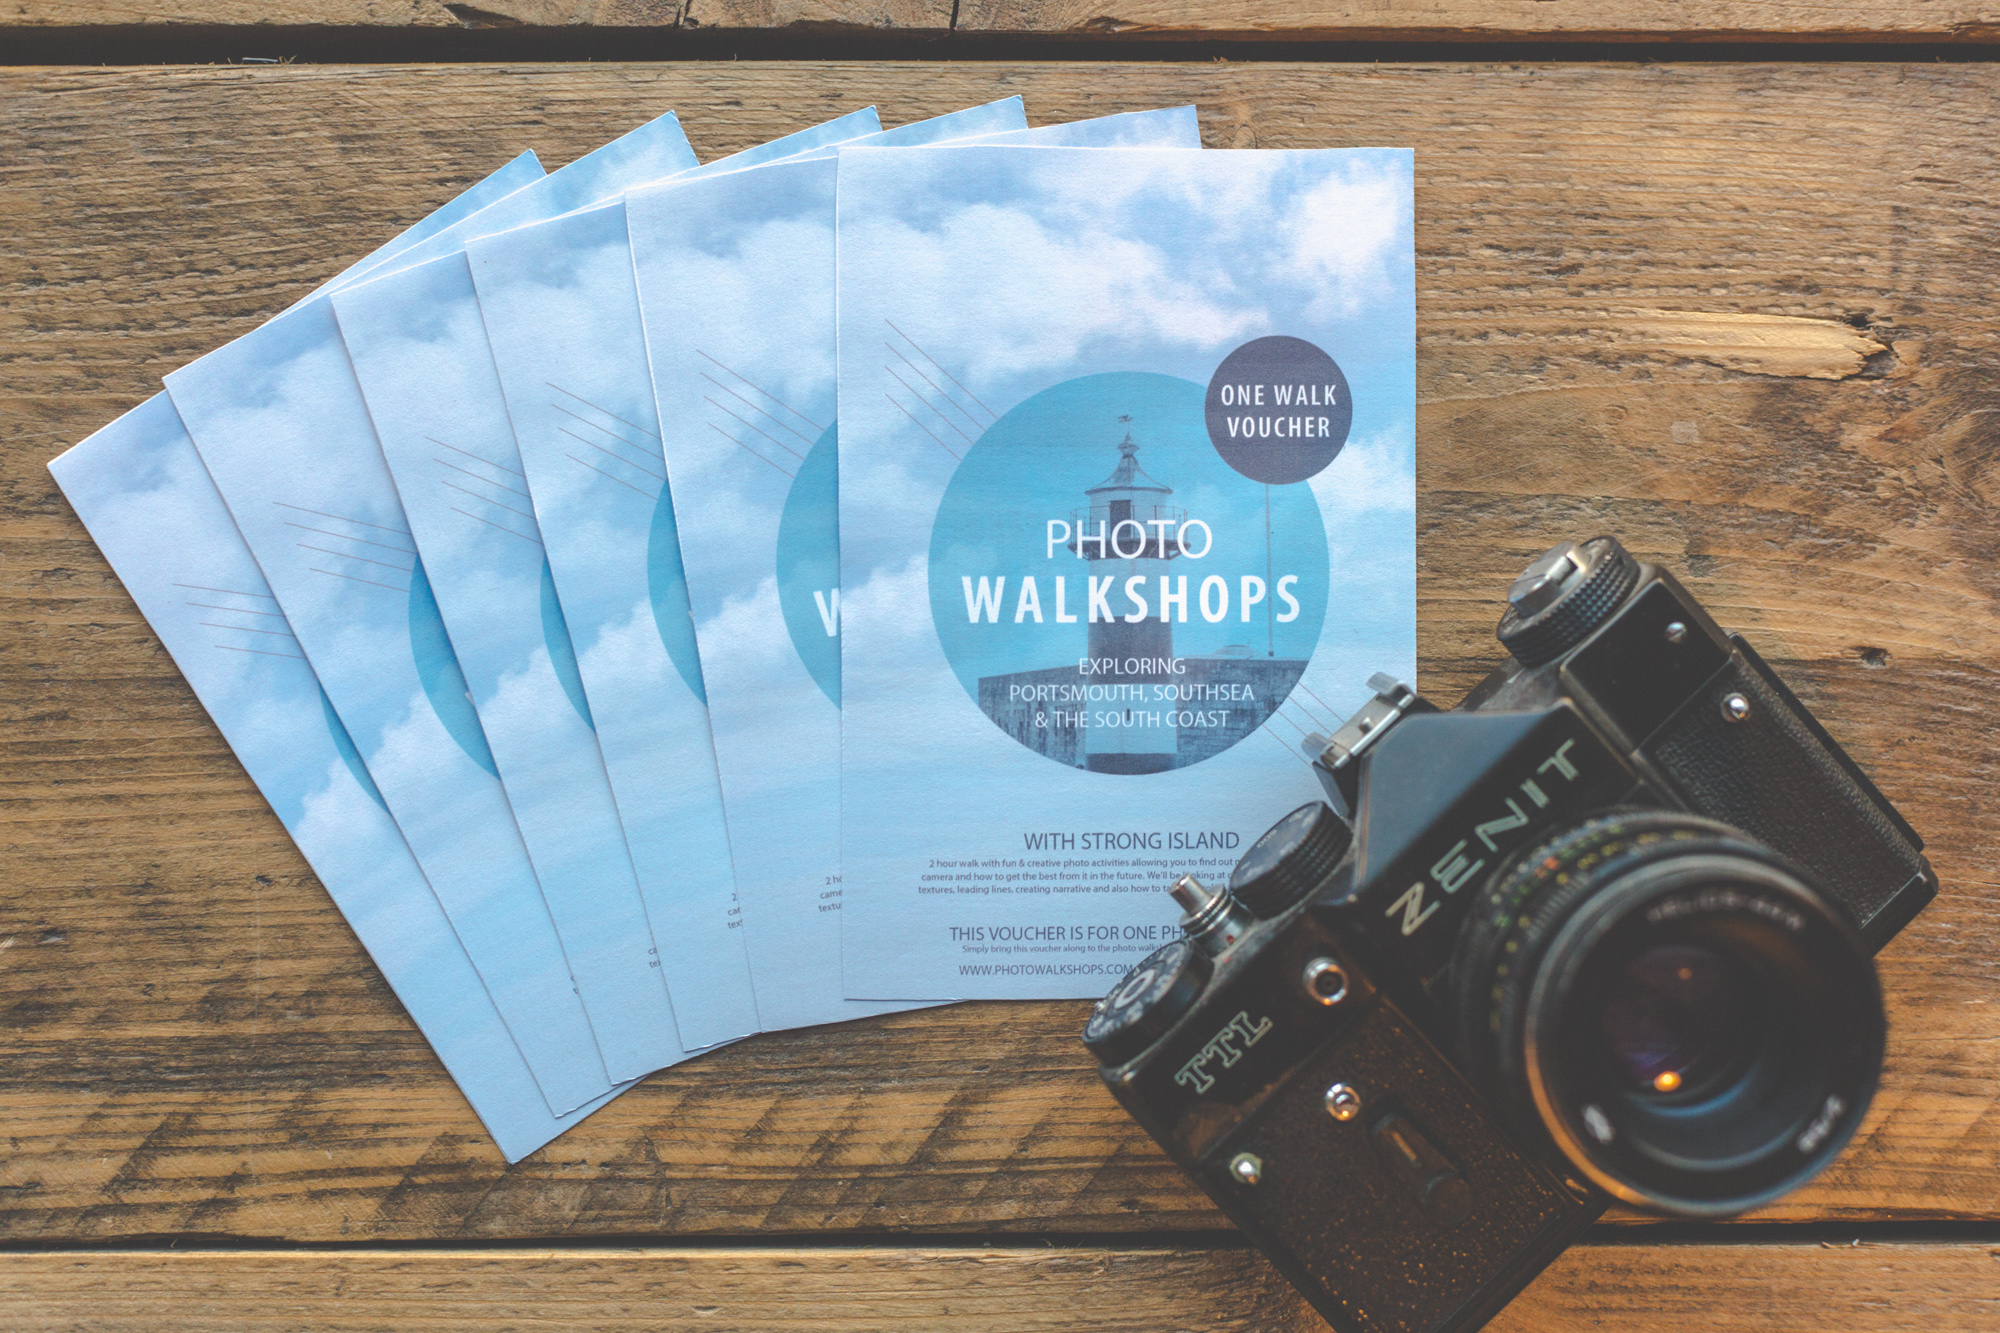 Photo Walkshop Vouchers